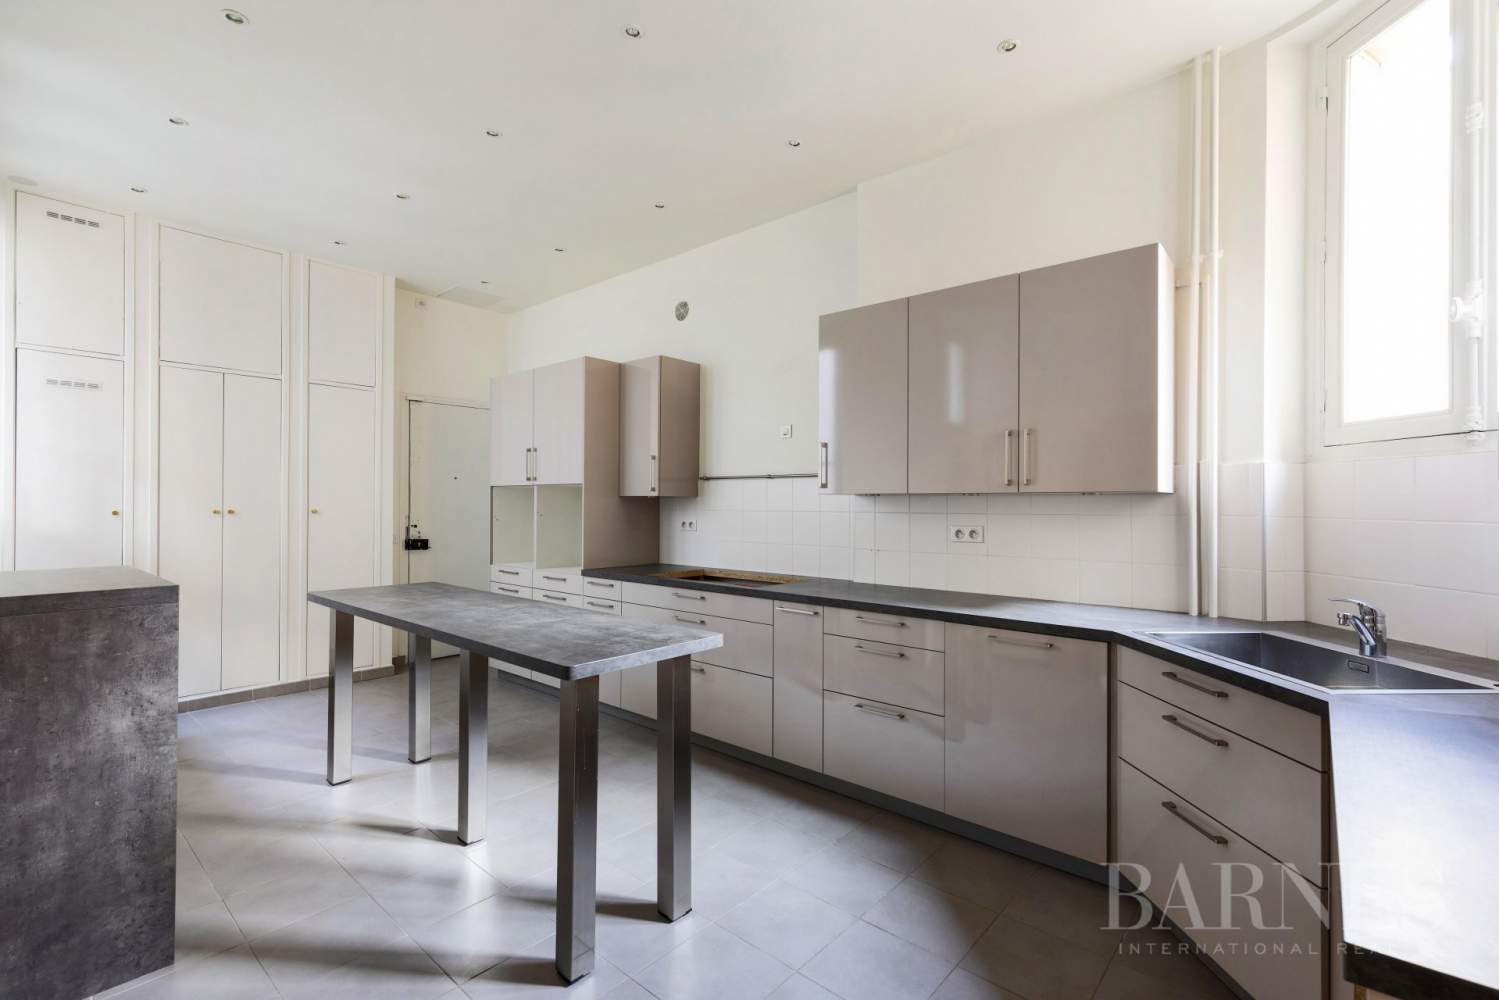 EXCLUSIVE - 8-ROOM APARTMENT FOR SALE - RENOVATED 1930s BUILDING - NEUILLY/PASTEUR picture 16